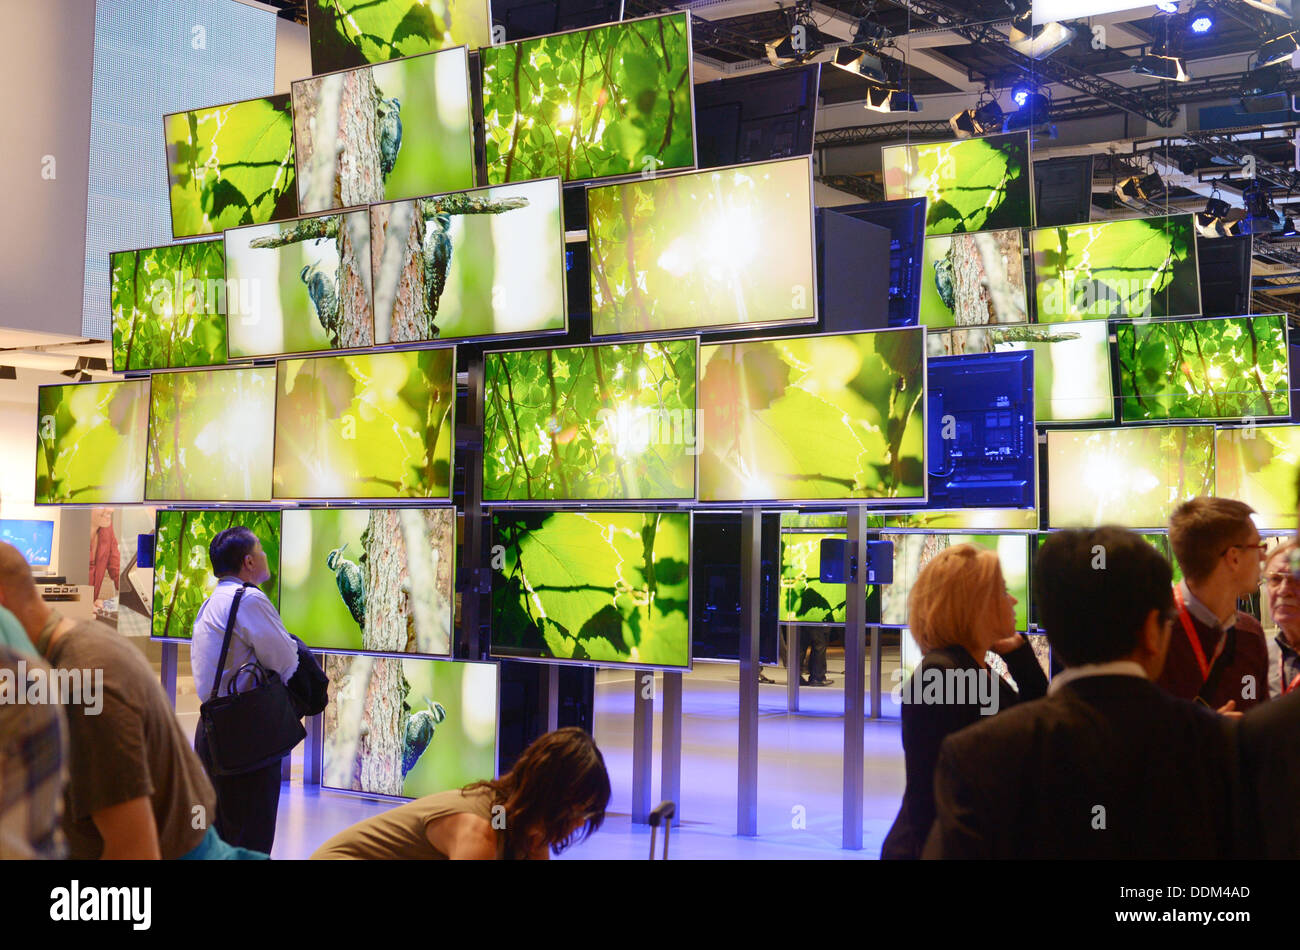 Berlin, Germany. 4th Sep, 2013. Visitors stand in front of a wall of 4K televisions at the fair stand of electronics manufacturer Panasonic during the media day at the International radio exhibition (IFA) in Berlin, Germany, 4 September 2013. The 4K technology for televisions is considered a successor to the common HD format. The IFA is going to take place from 6 September to 11 September 2013. Photo: Rainer Jensen/dpa/Alamy Live News - Stock Image